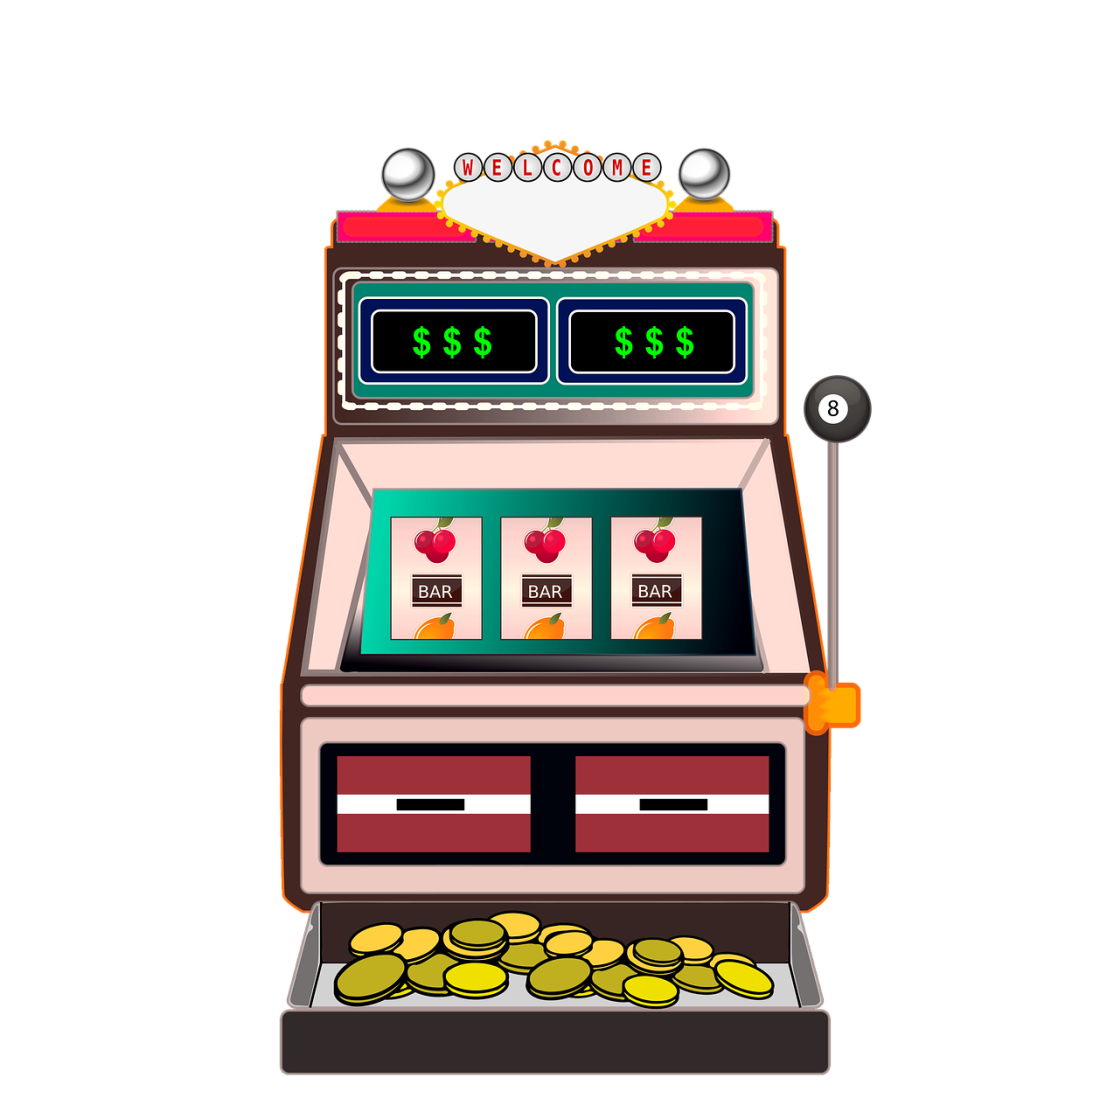 slot-machine-2304135_1280